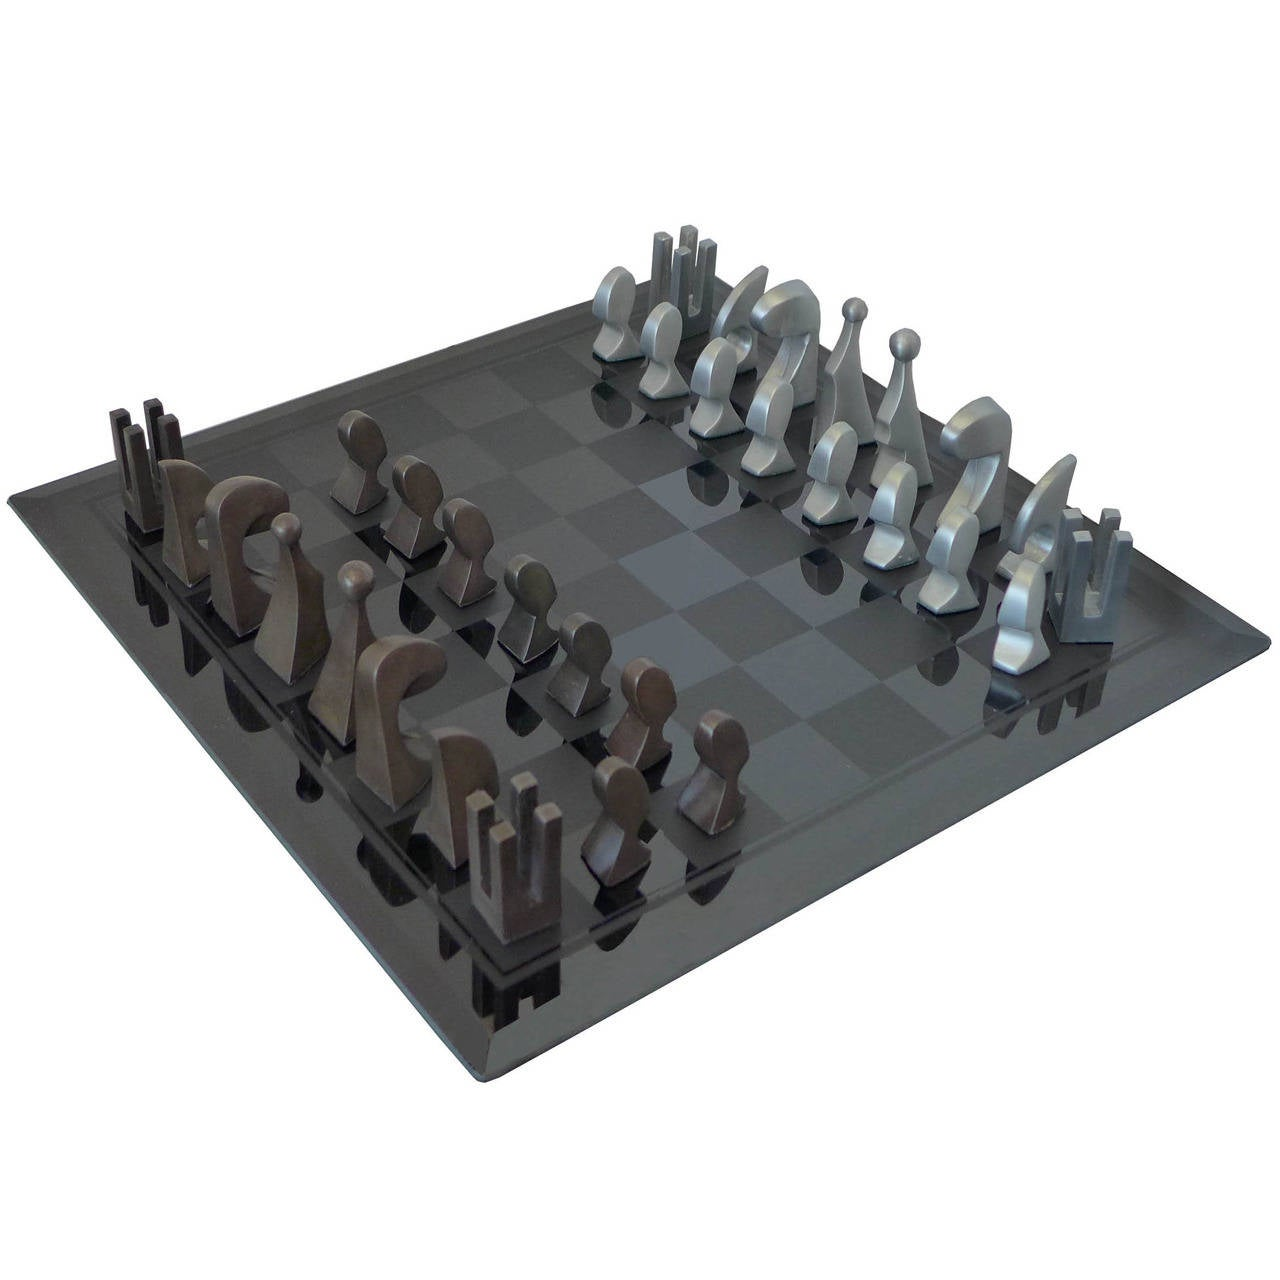 Pierre Cardin 1969 Evolution Chess Set With Glass Board